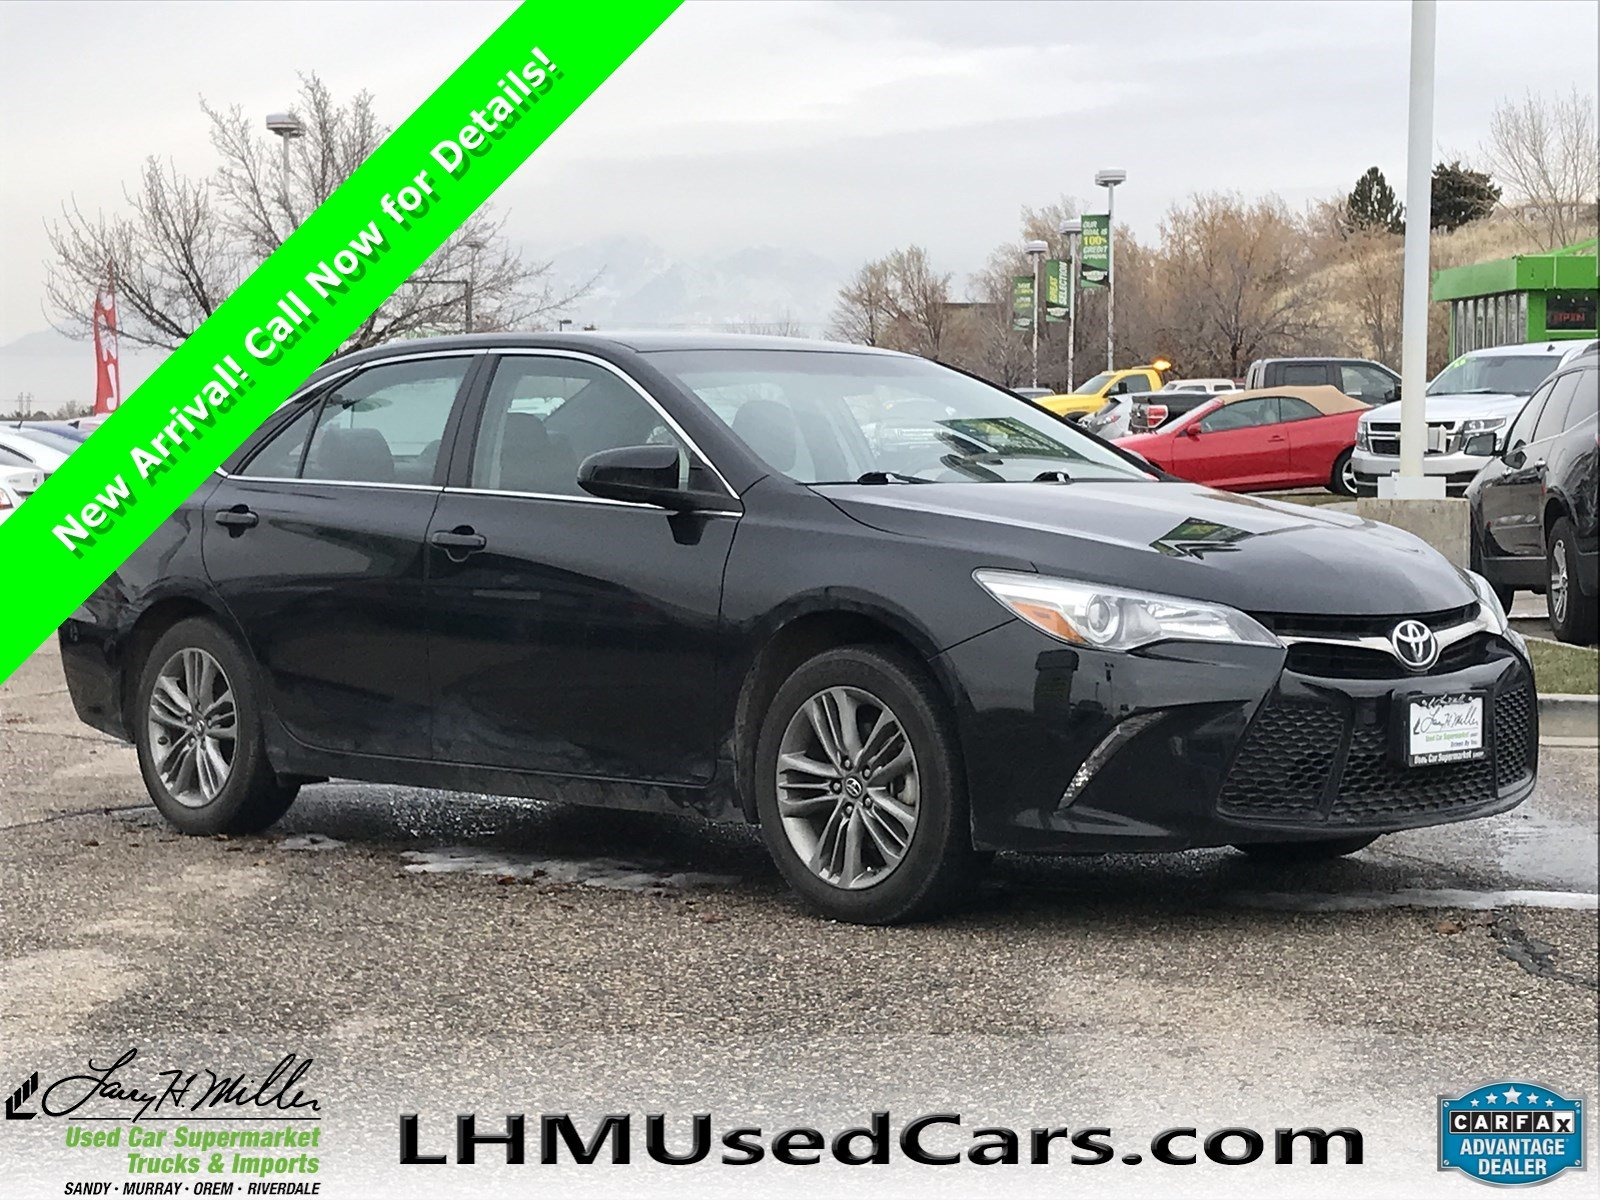 Toyota Used Cars Awesome Pre Owned 2017 toyota Camry 4dr Car In Sandy S5324